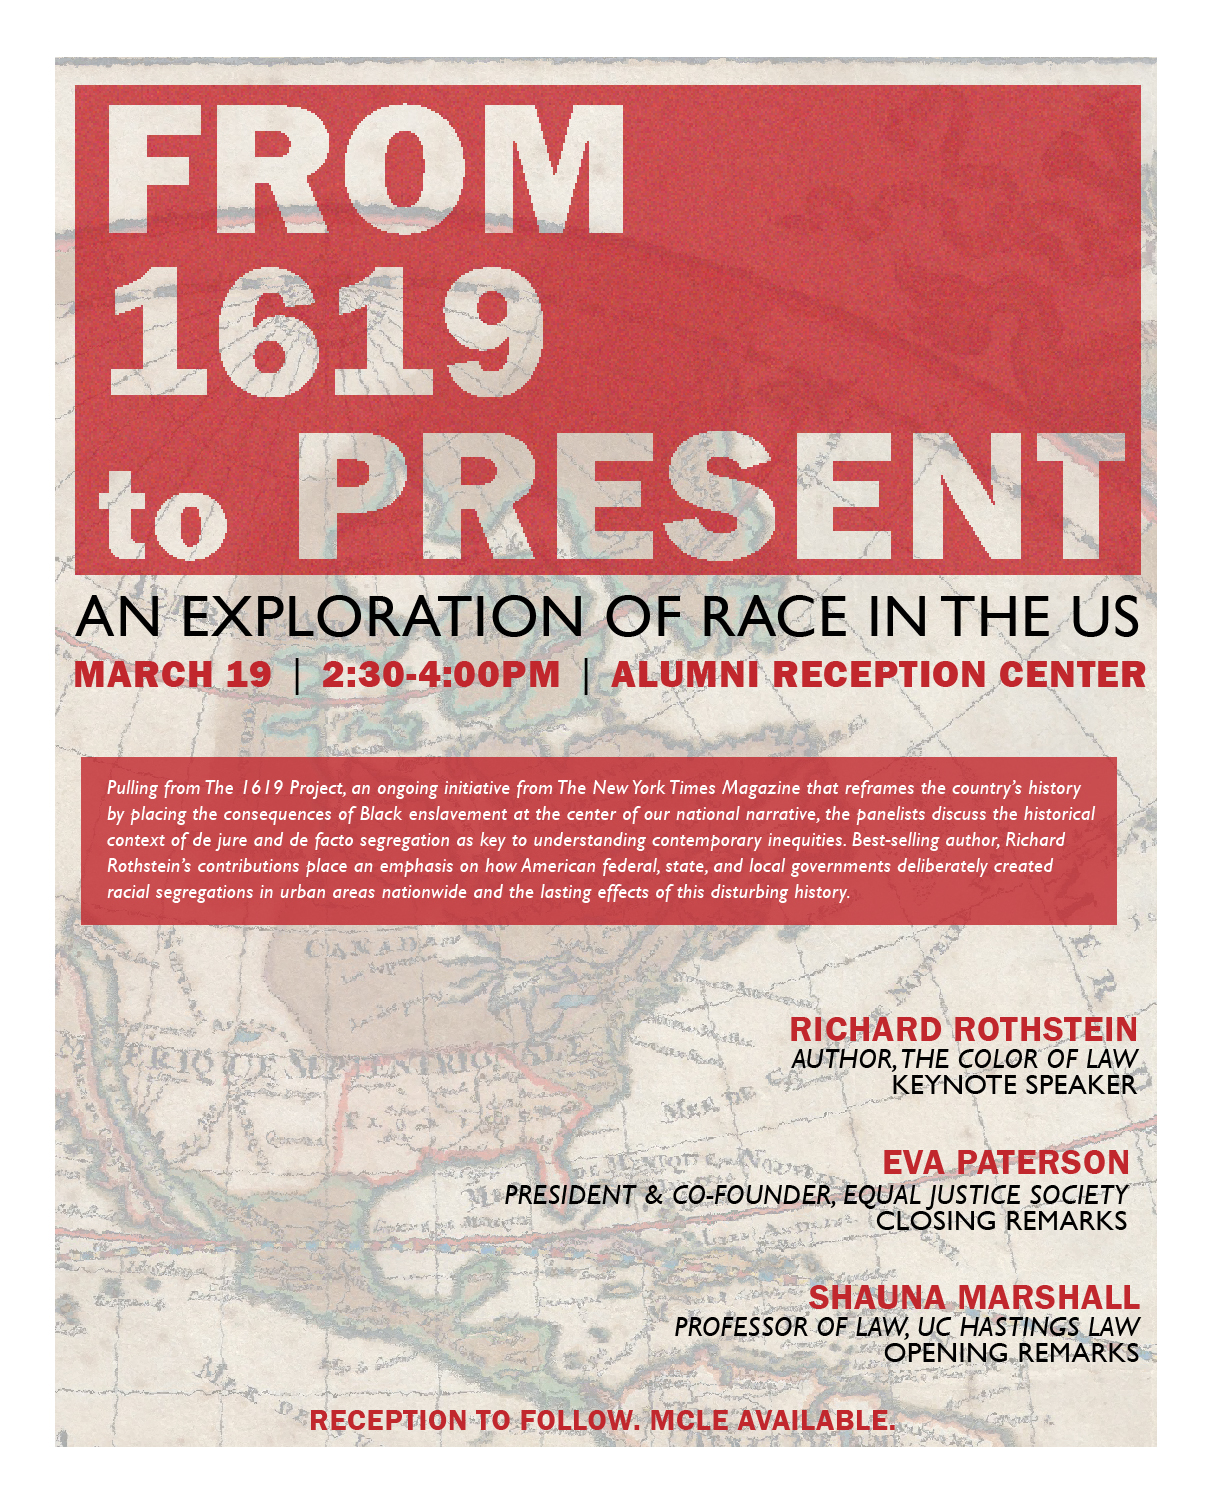 From 1619 to Present: An Exploration of Race in the US